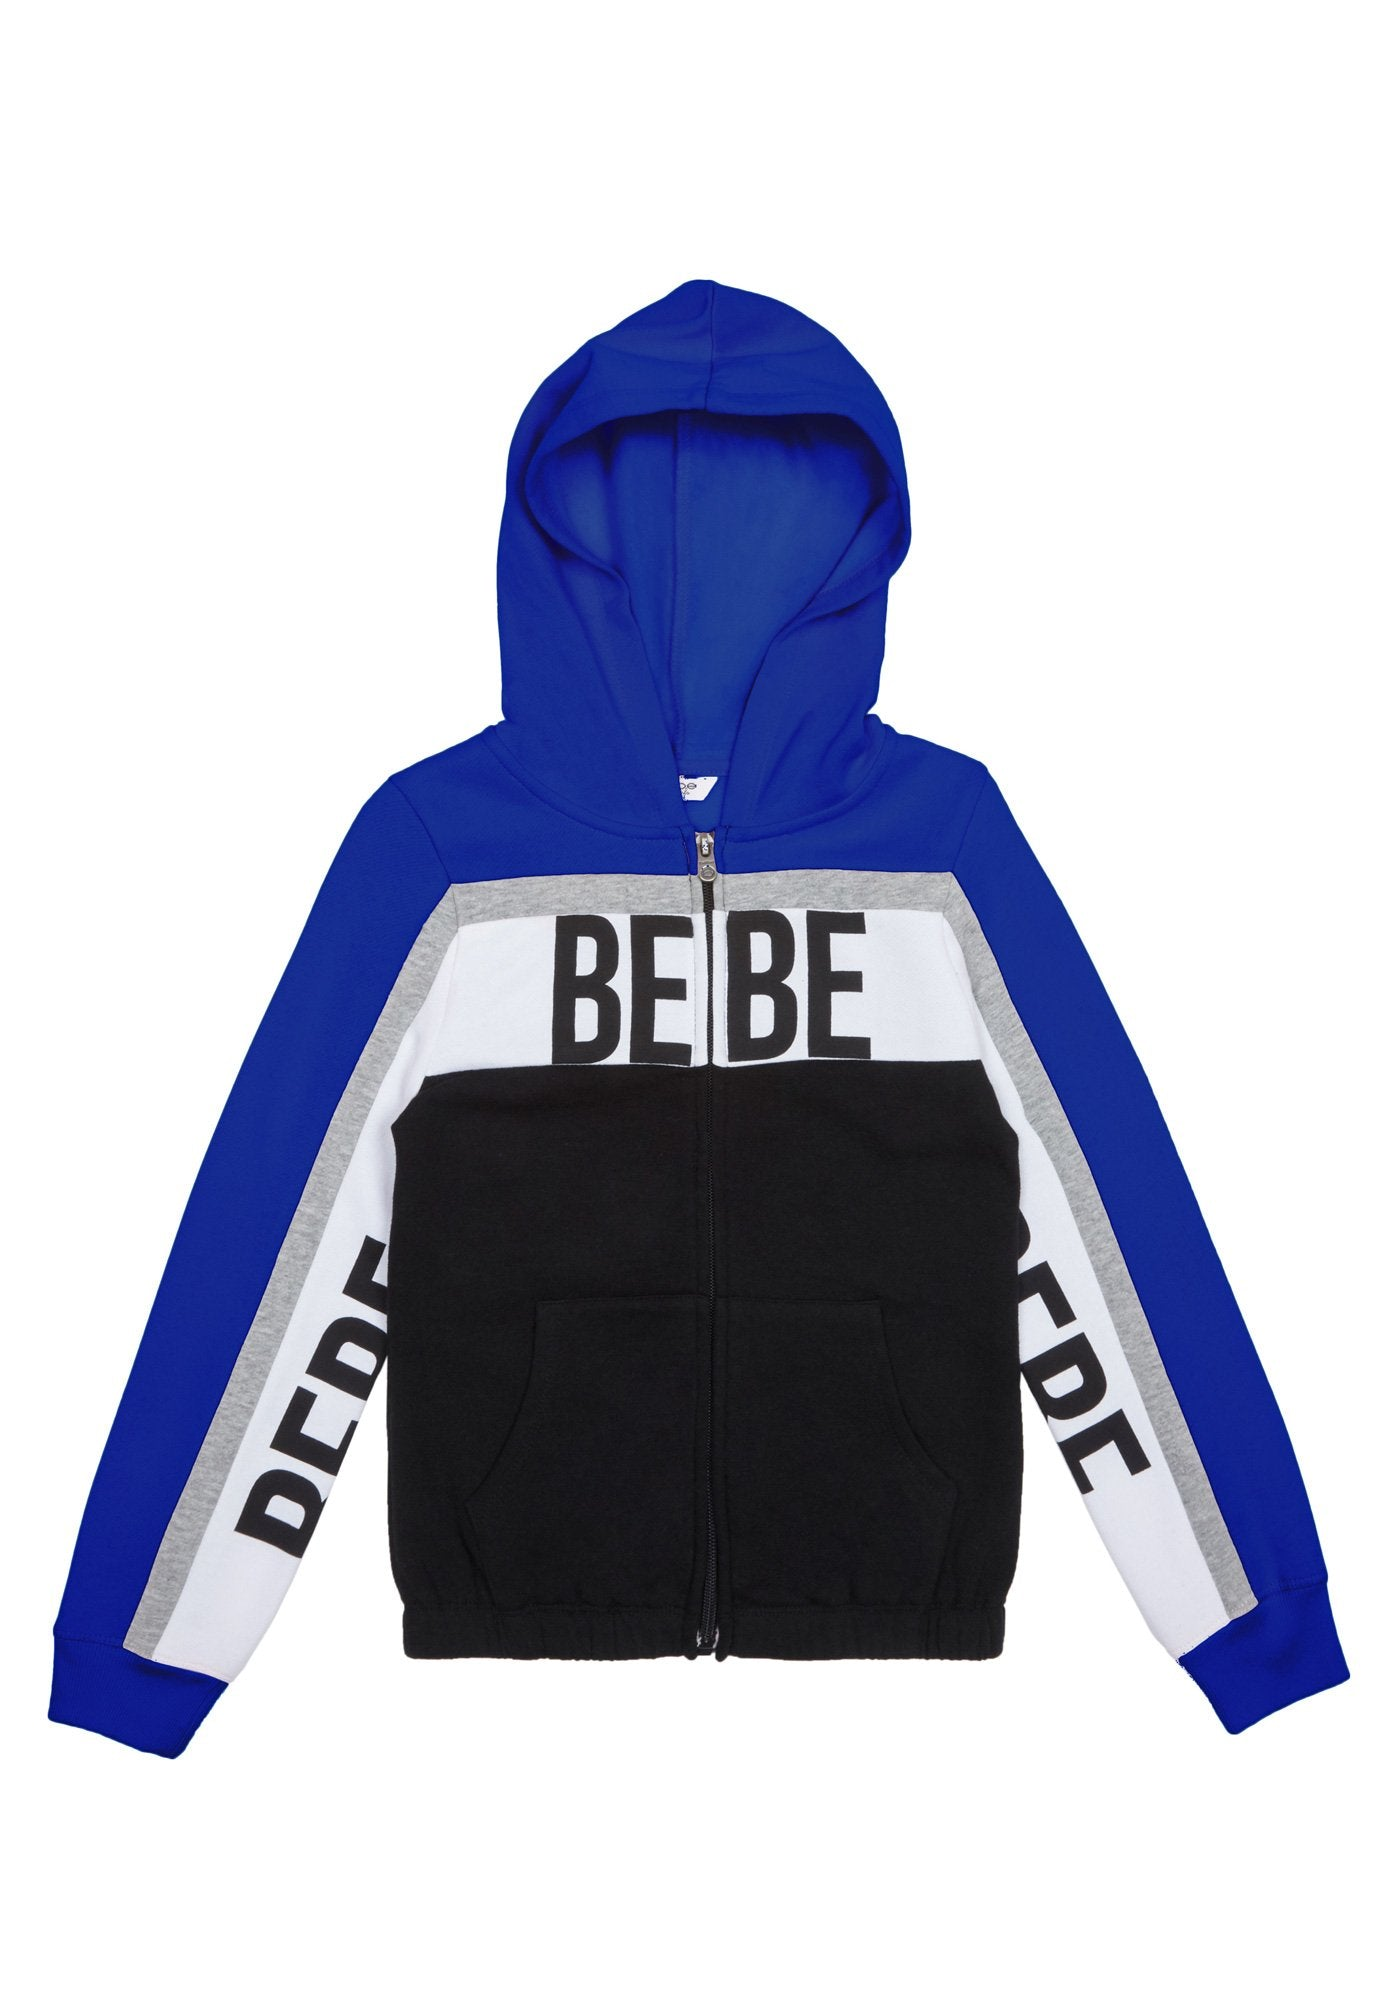 Image of Bebe Women's Girls Logo Fleece Jacket, Size XL(16) in Blue Cotton